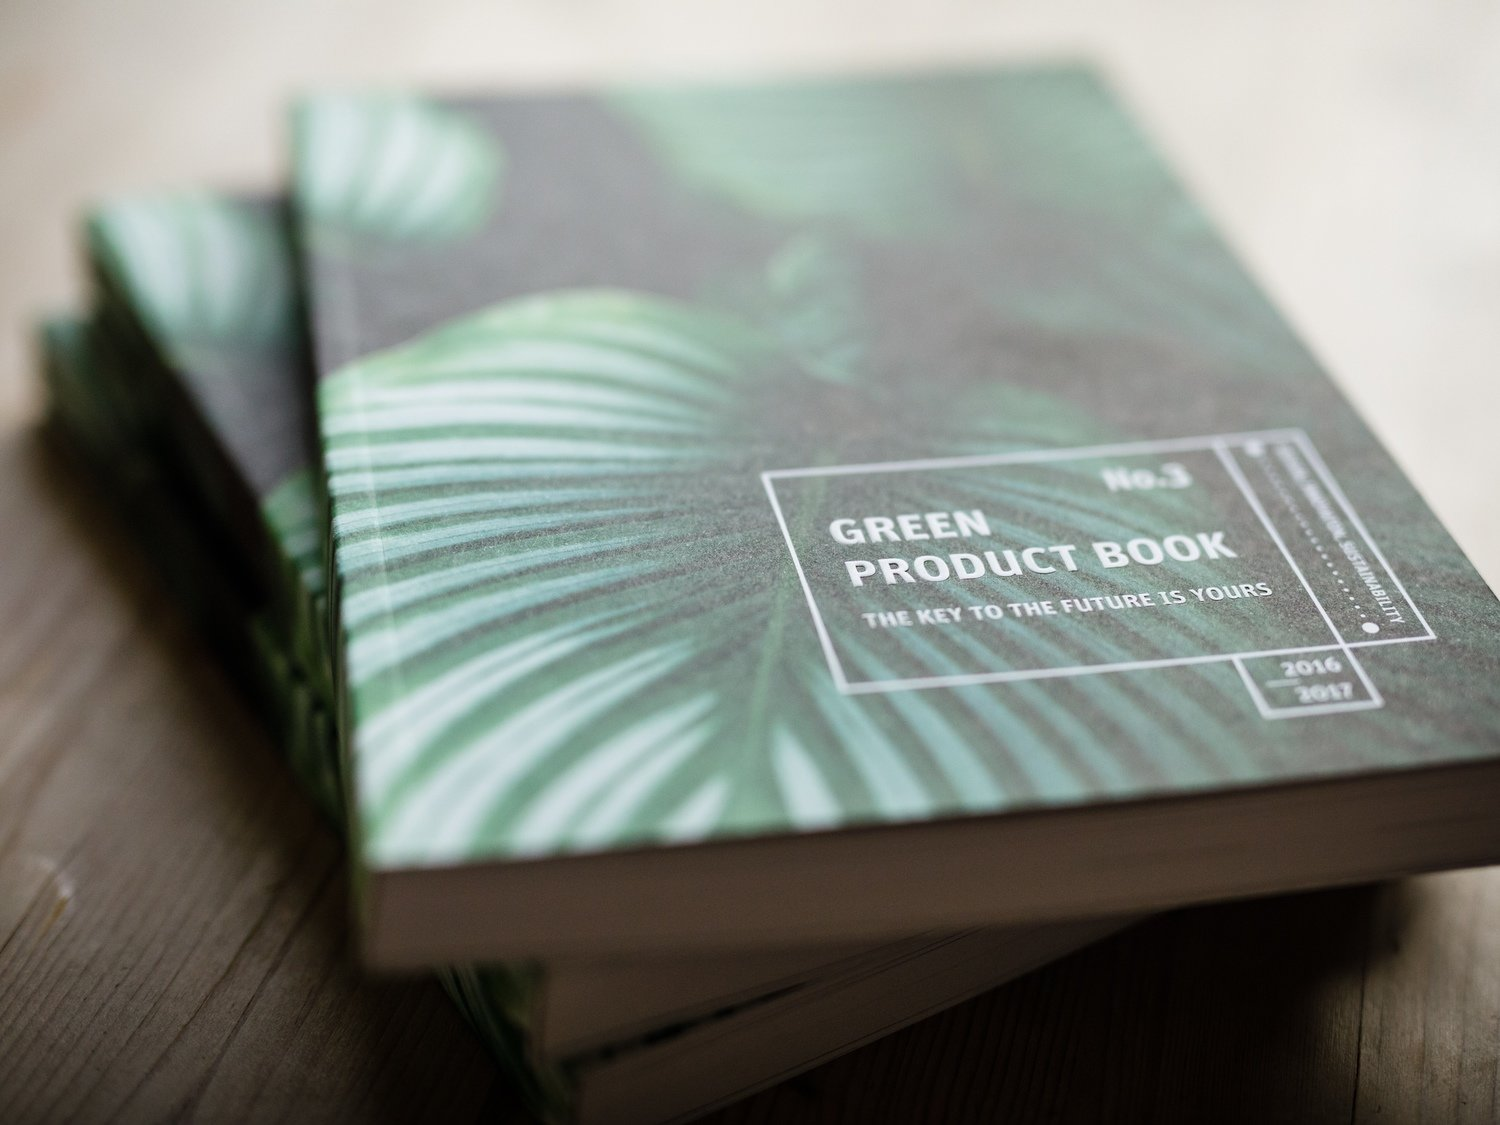 Green Product Book No 3 & 4